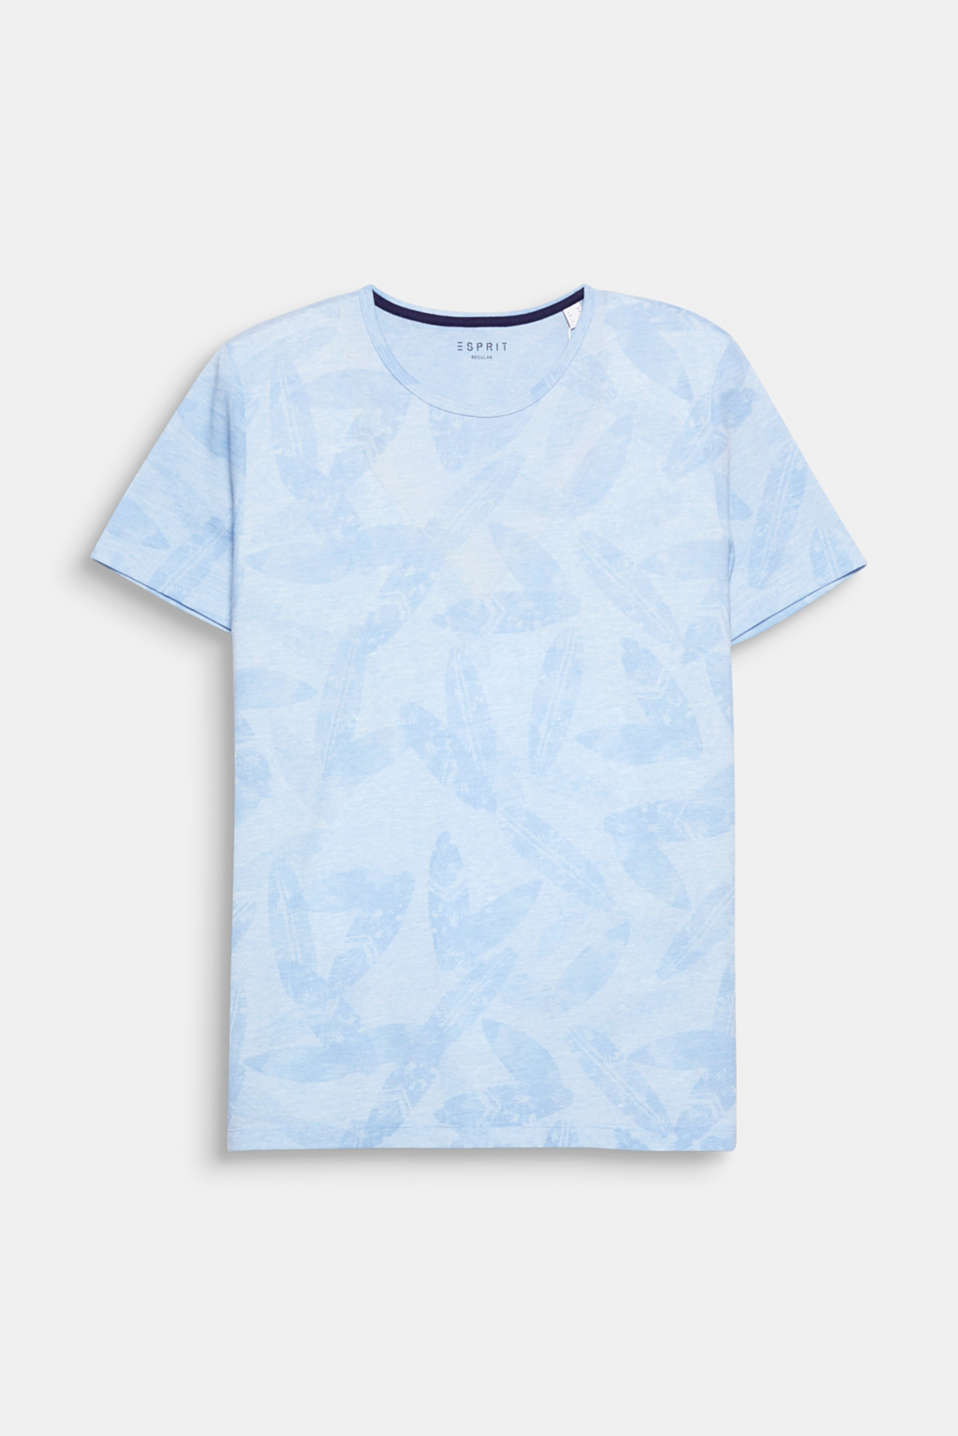 Trend: tropical pattern. Tinted leaf prints give this T-shirt a cool summer feel.